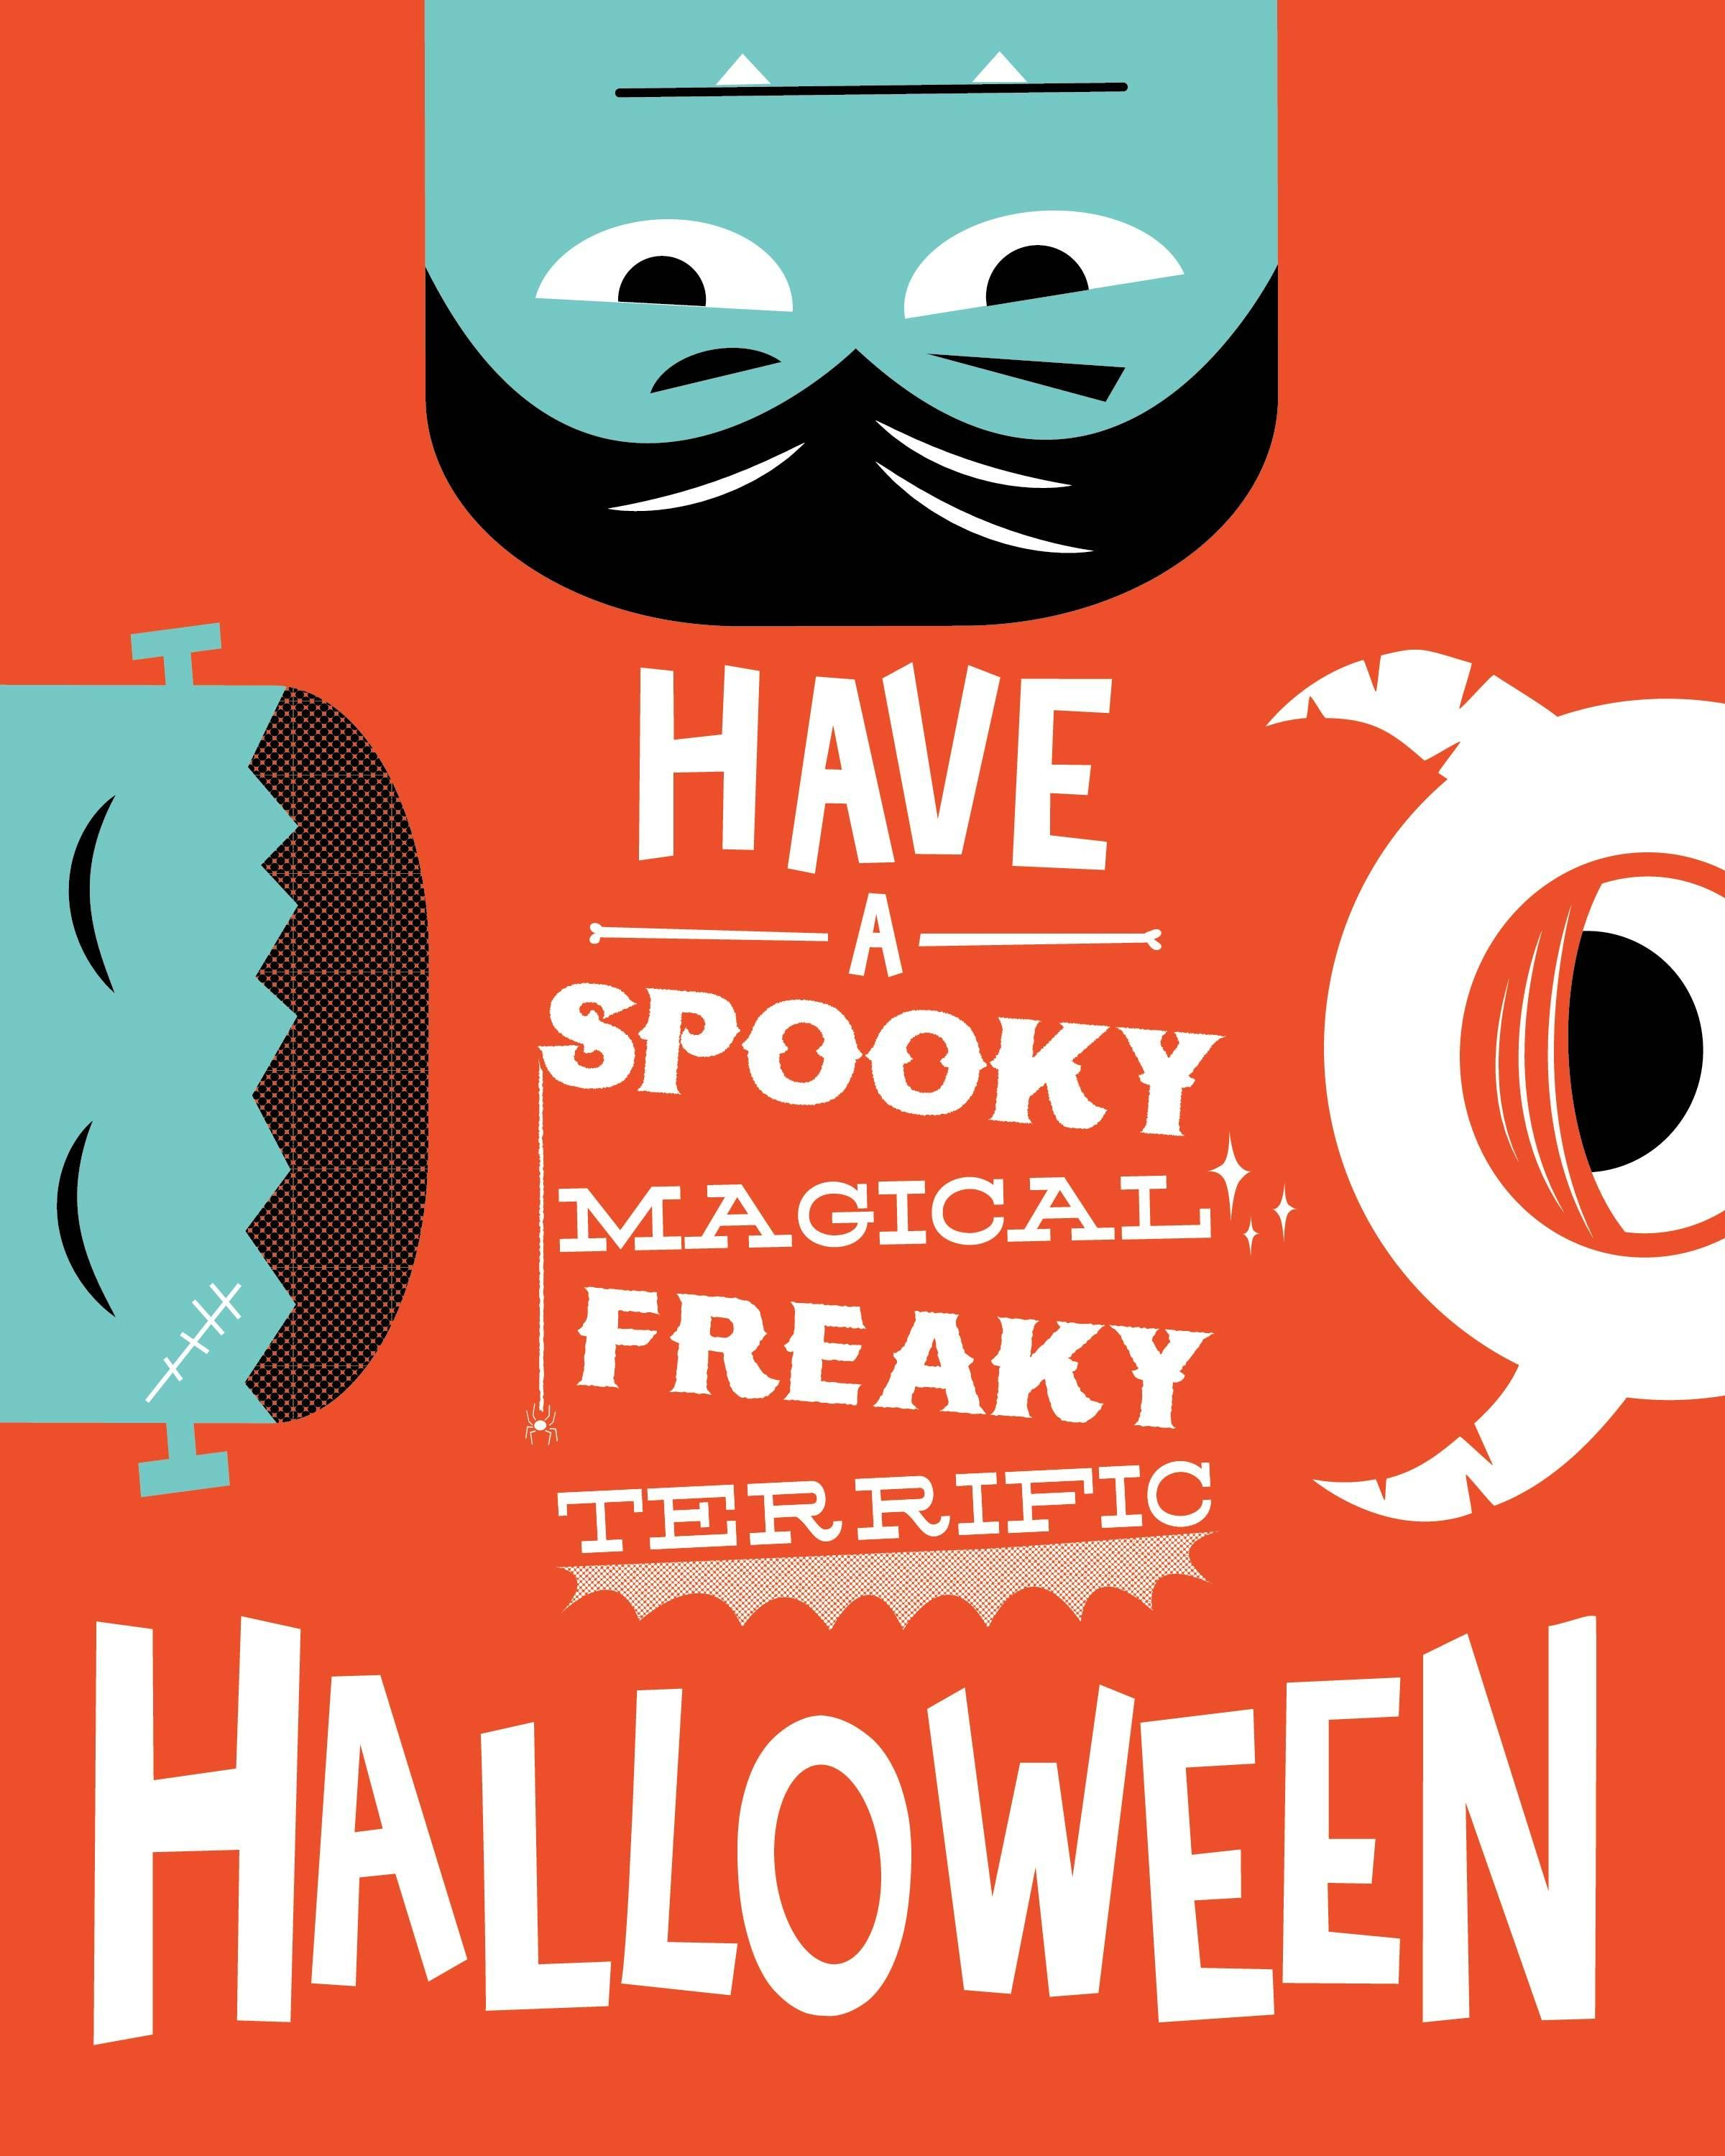 Halloween Poster. If you'd like to see more of my work